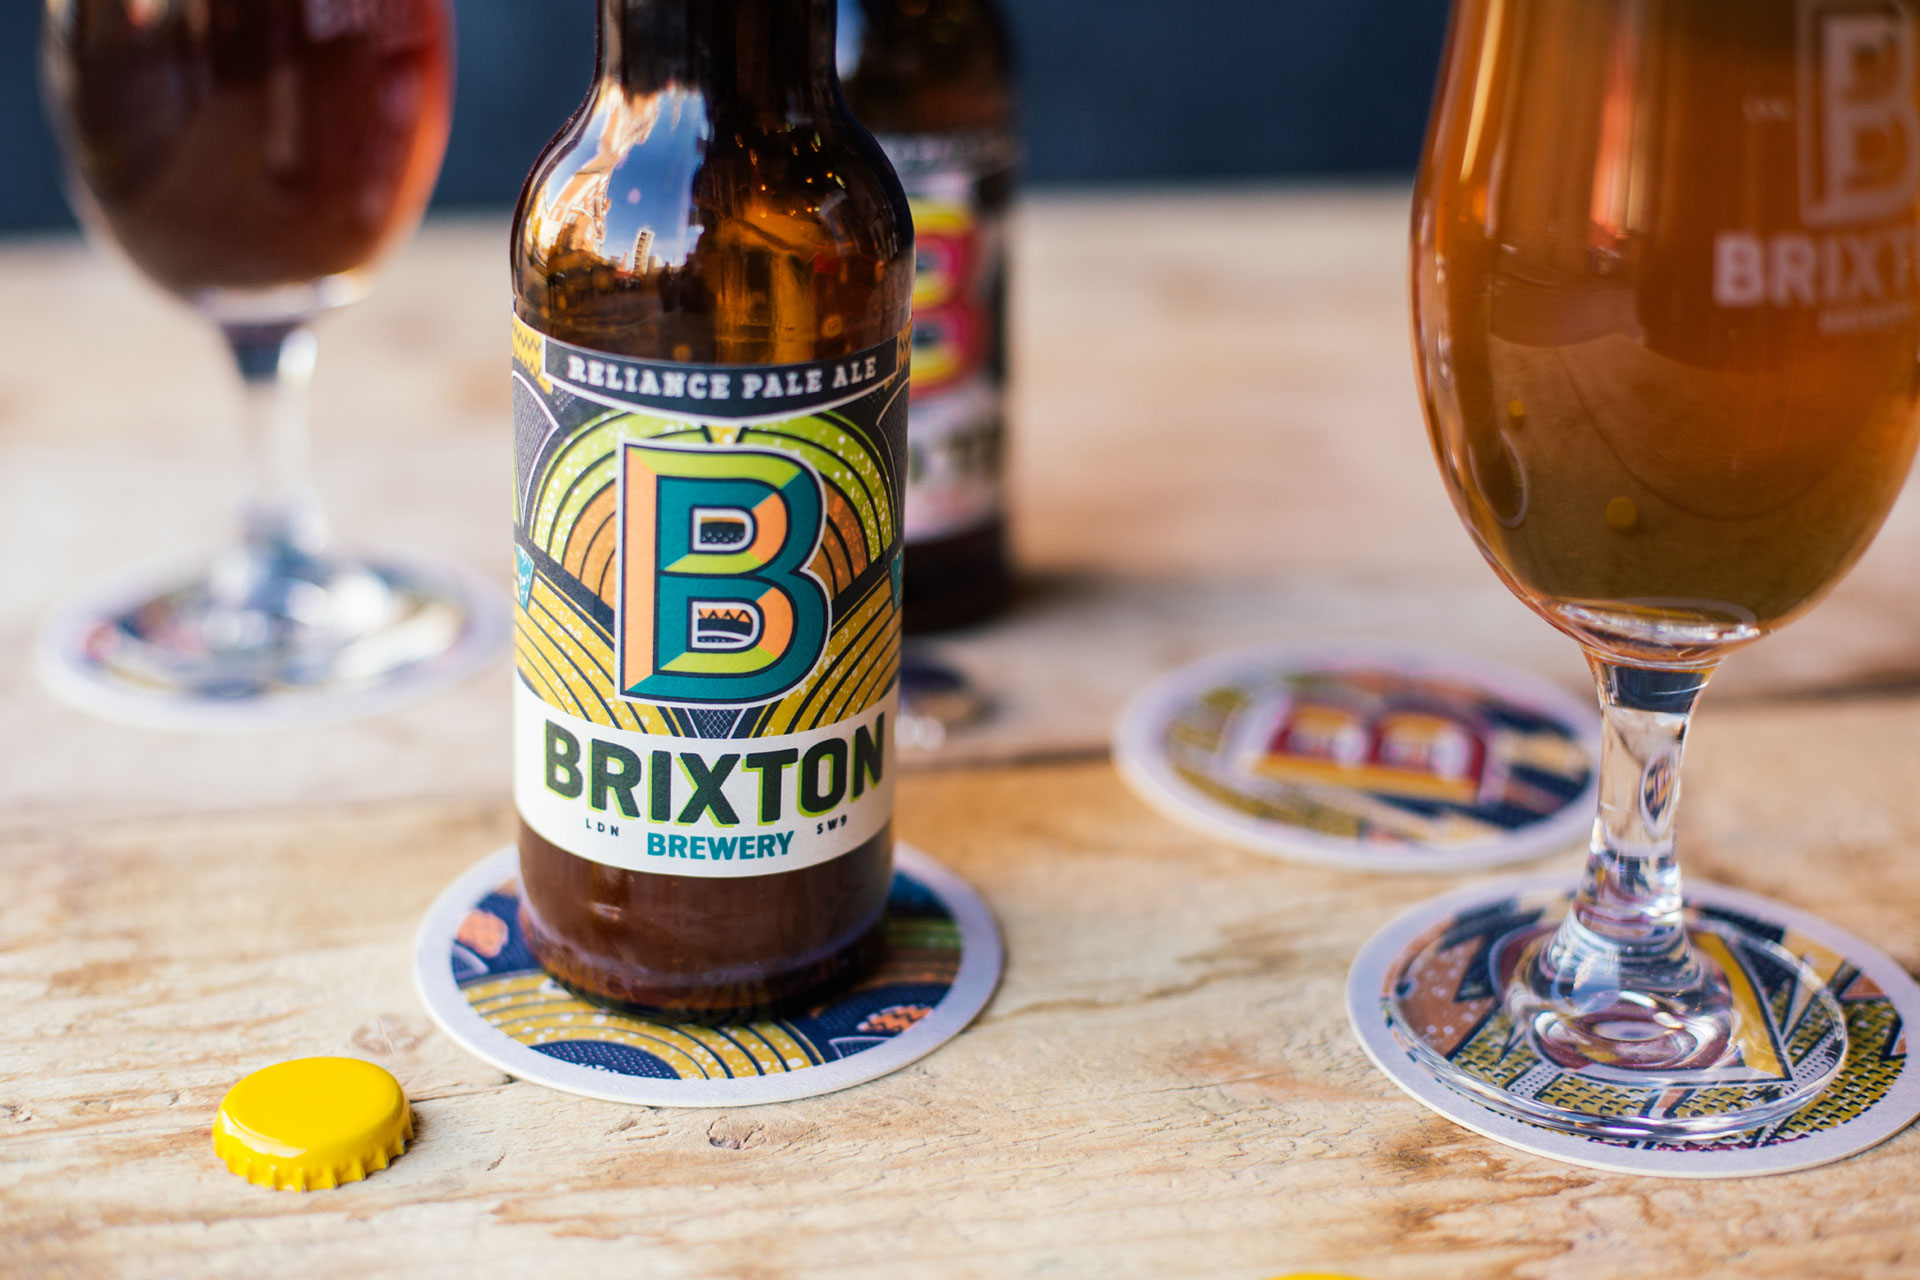 junction-single-project_brixton-brewery_aw01-02